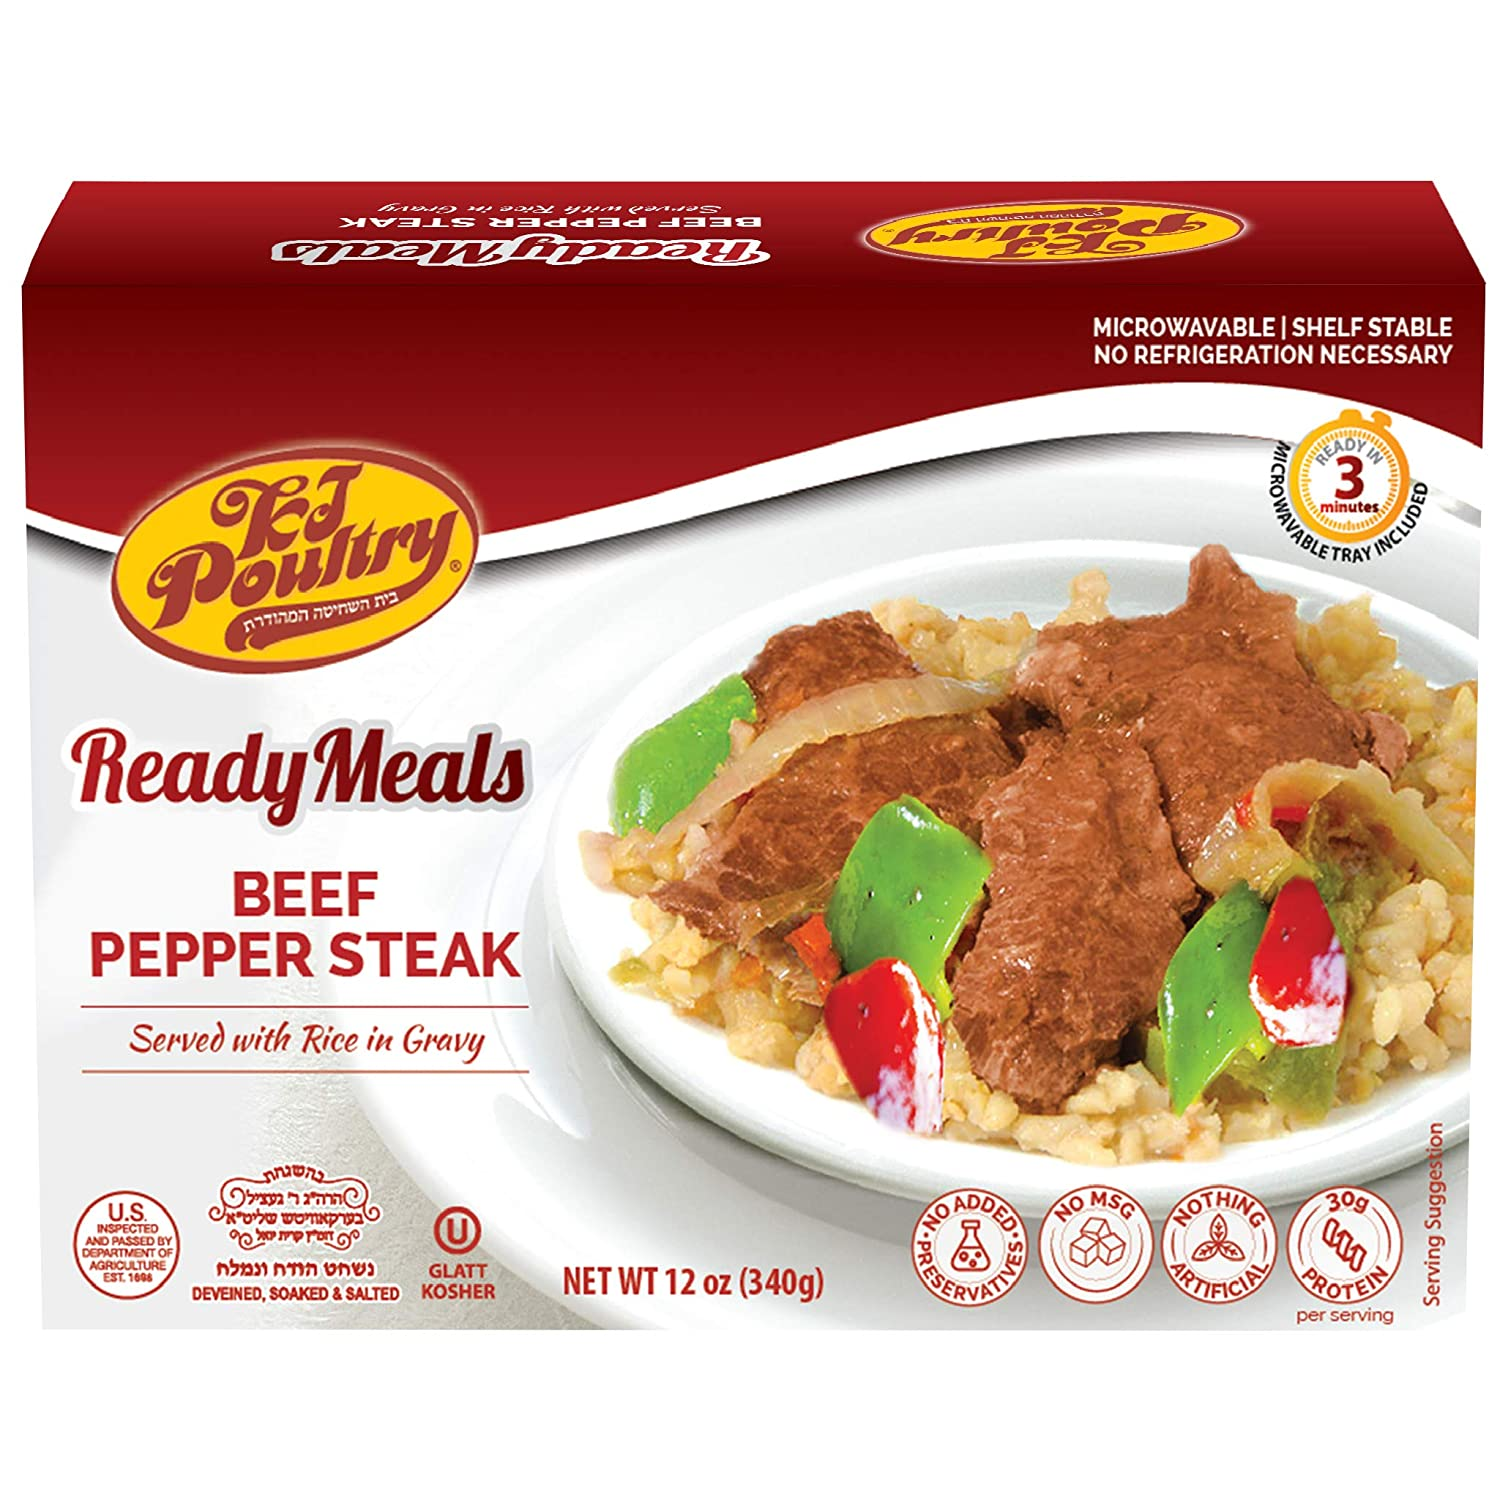 Kosher Mre Meat Meals Ready to Eat, Beef Pepper Steak (1 Pack) - Prepared Entree Fully Cooked, Shelf Stable Microwave Dinner, Deliverd Home – Travel, Military, Camping, Emergency Survival Canned Food